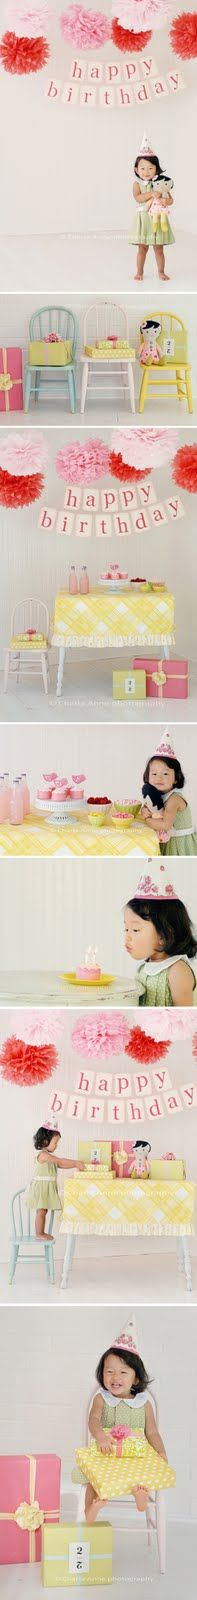 Such a cute birthday party photo shoot.